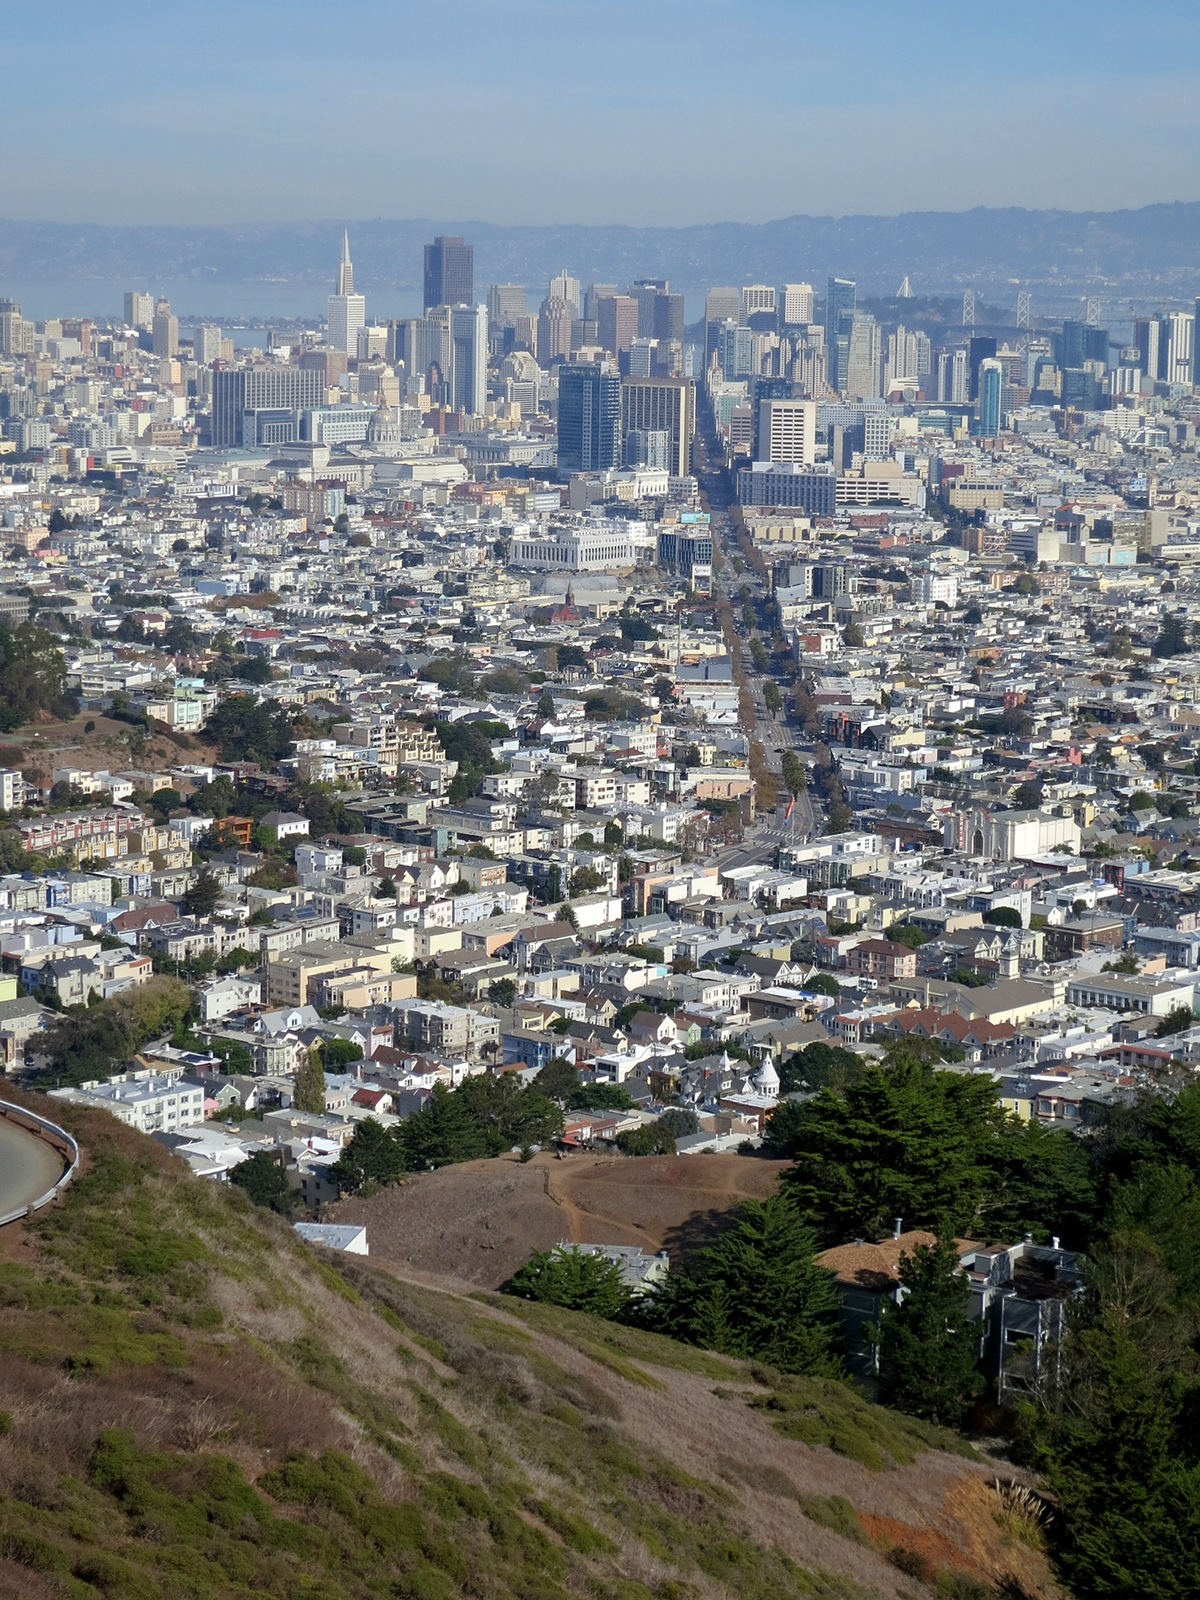 San Francisco, Yerba Buena Island, and beyond